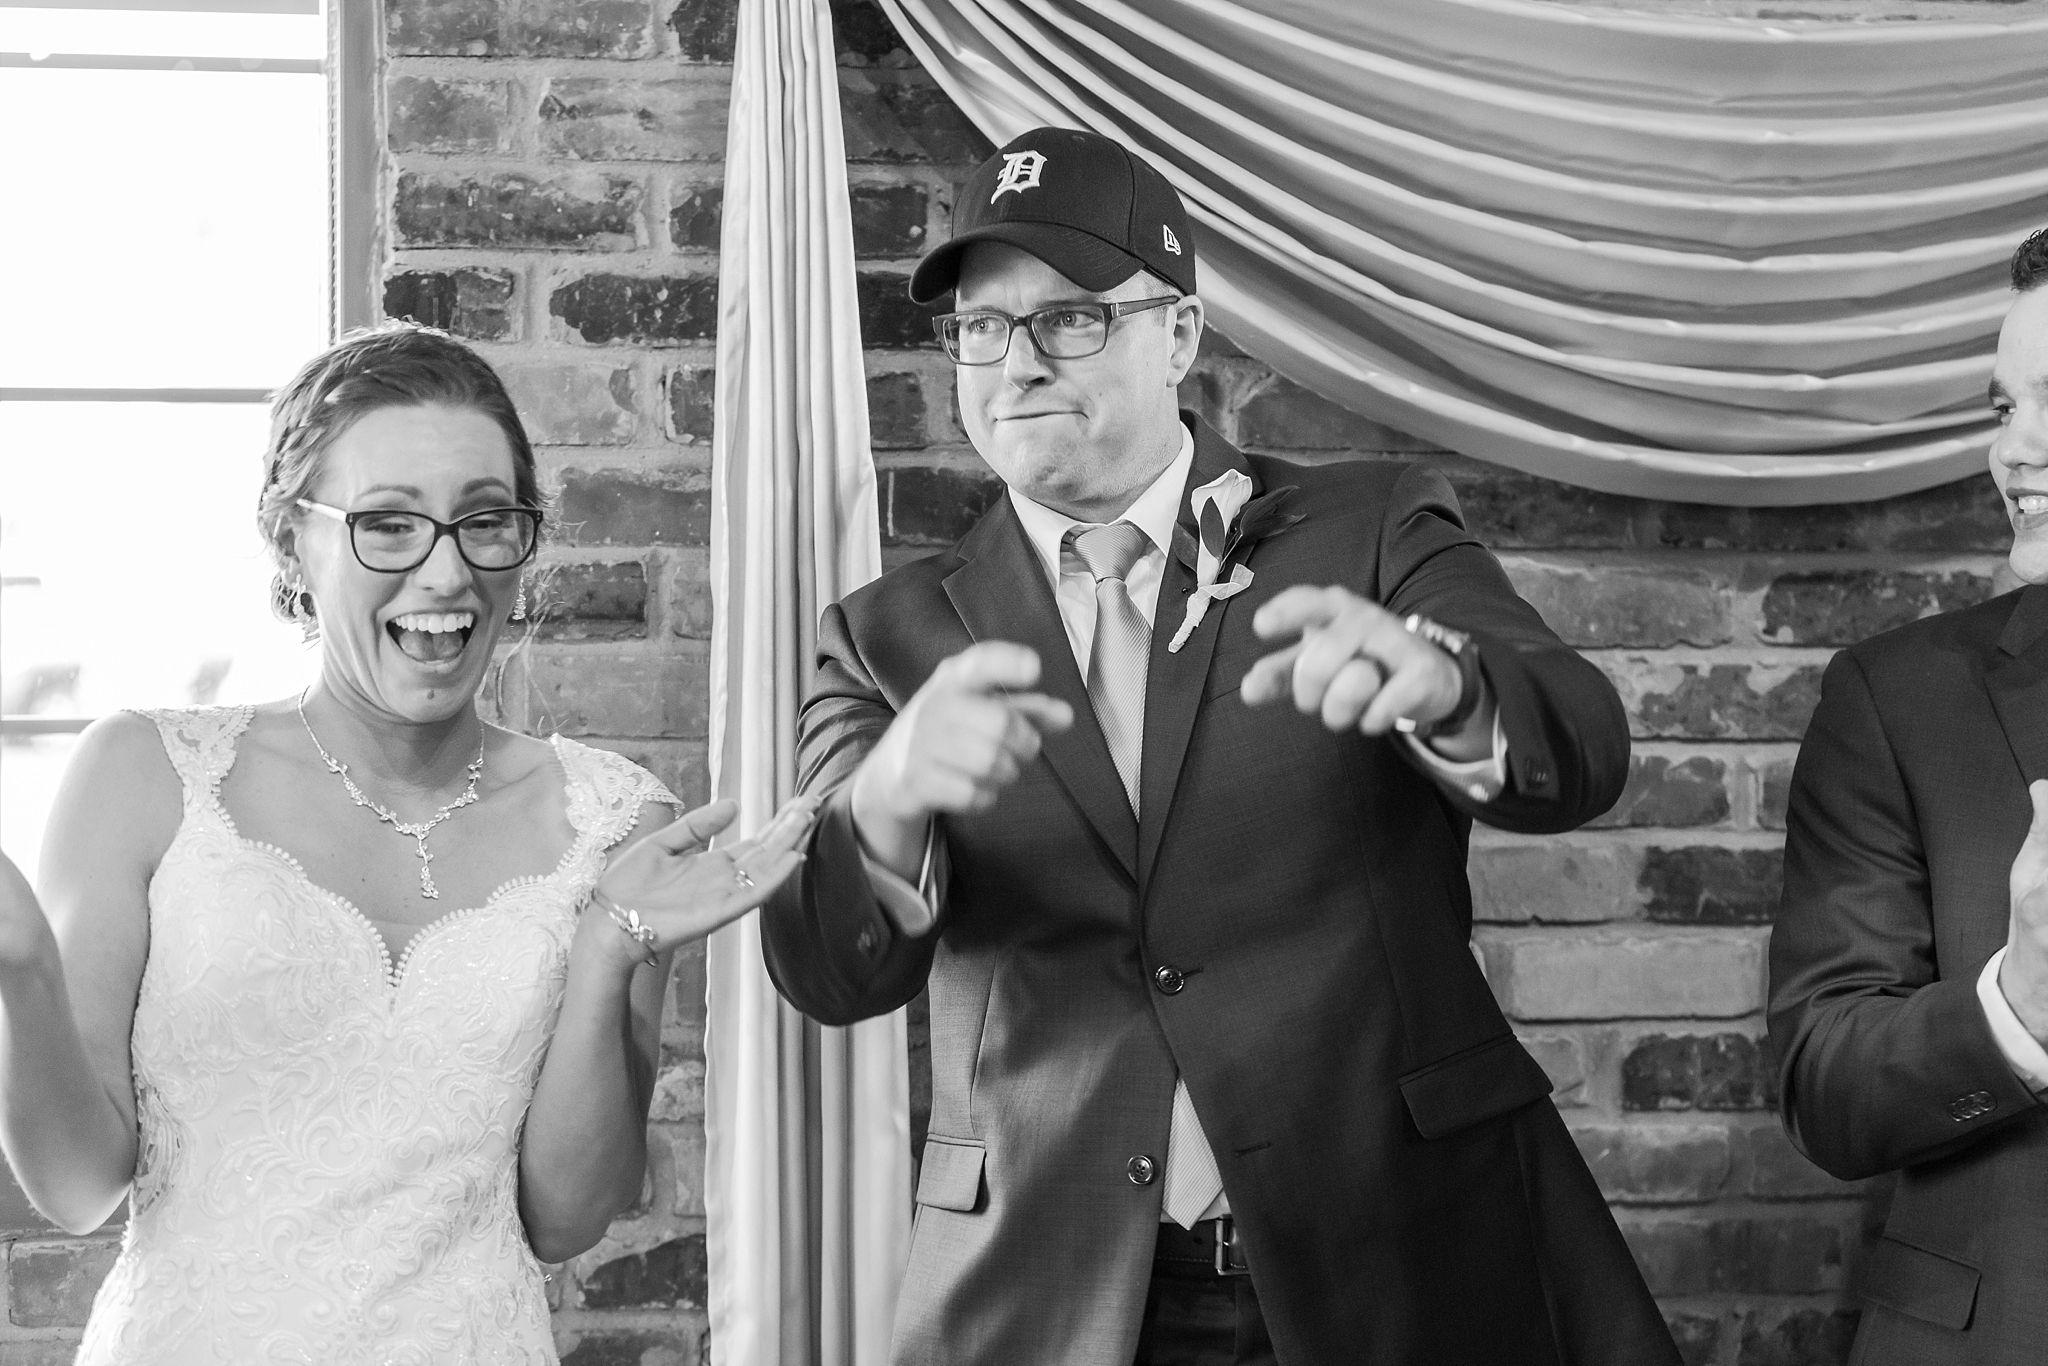 classic-timeless-candid-wedding-photos-in-grosse-ile-and-trenton-michigan-by-courtney-carolyn-photography_0060.jpg